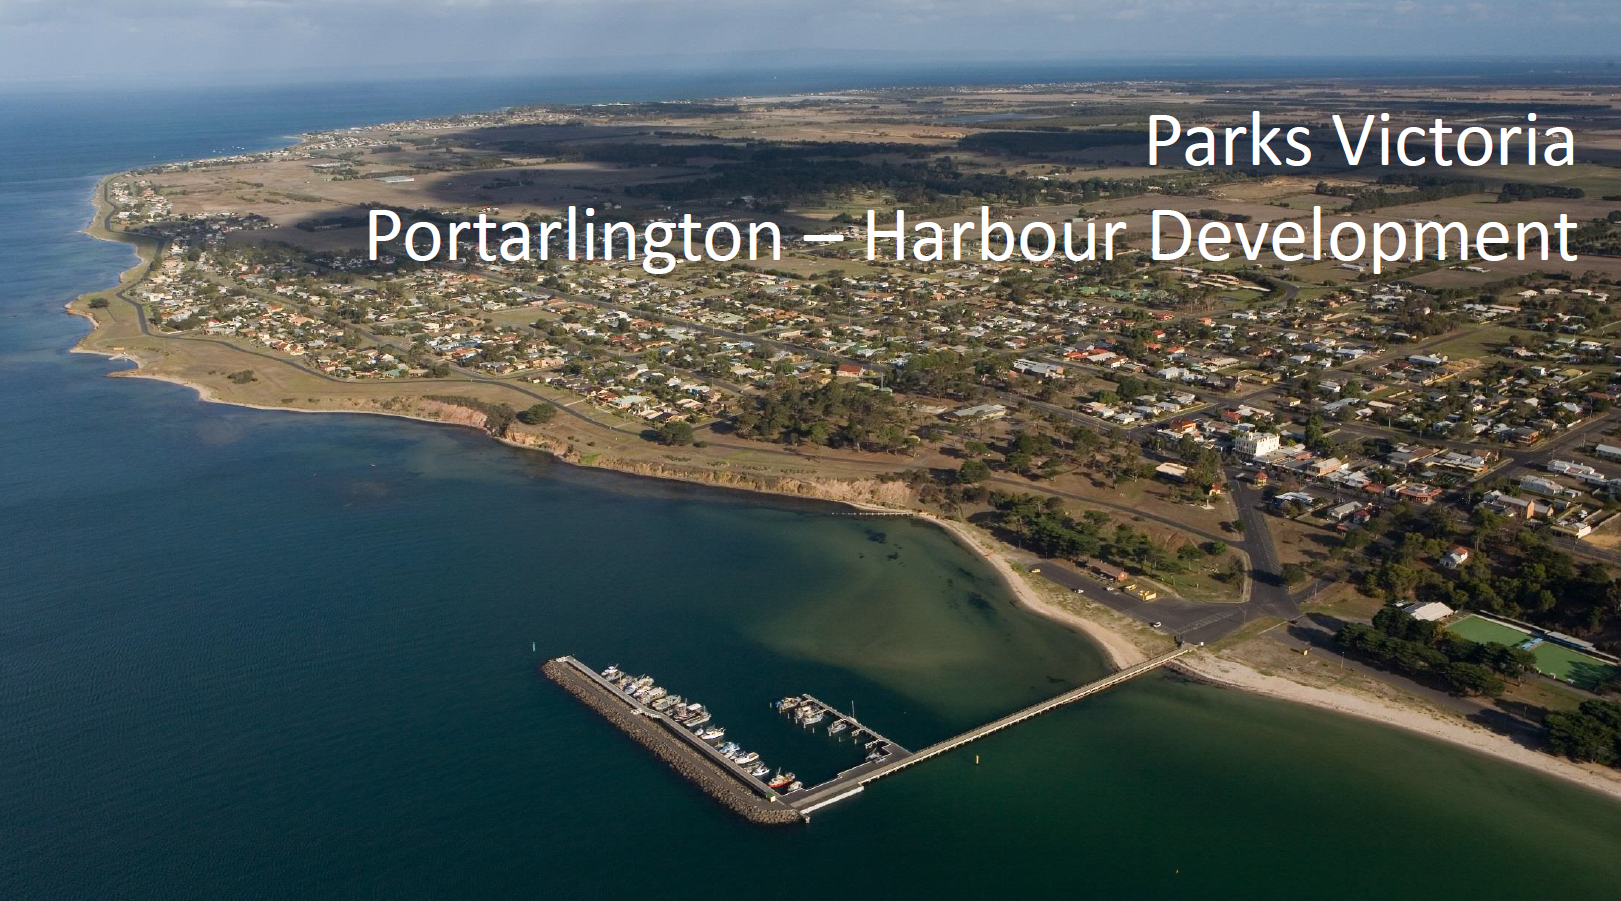 Development of Portarlington Harbour to Facilitate Growth in Aquaculture Industry and Tourism